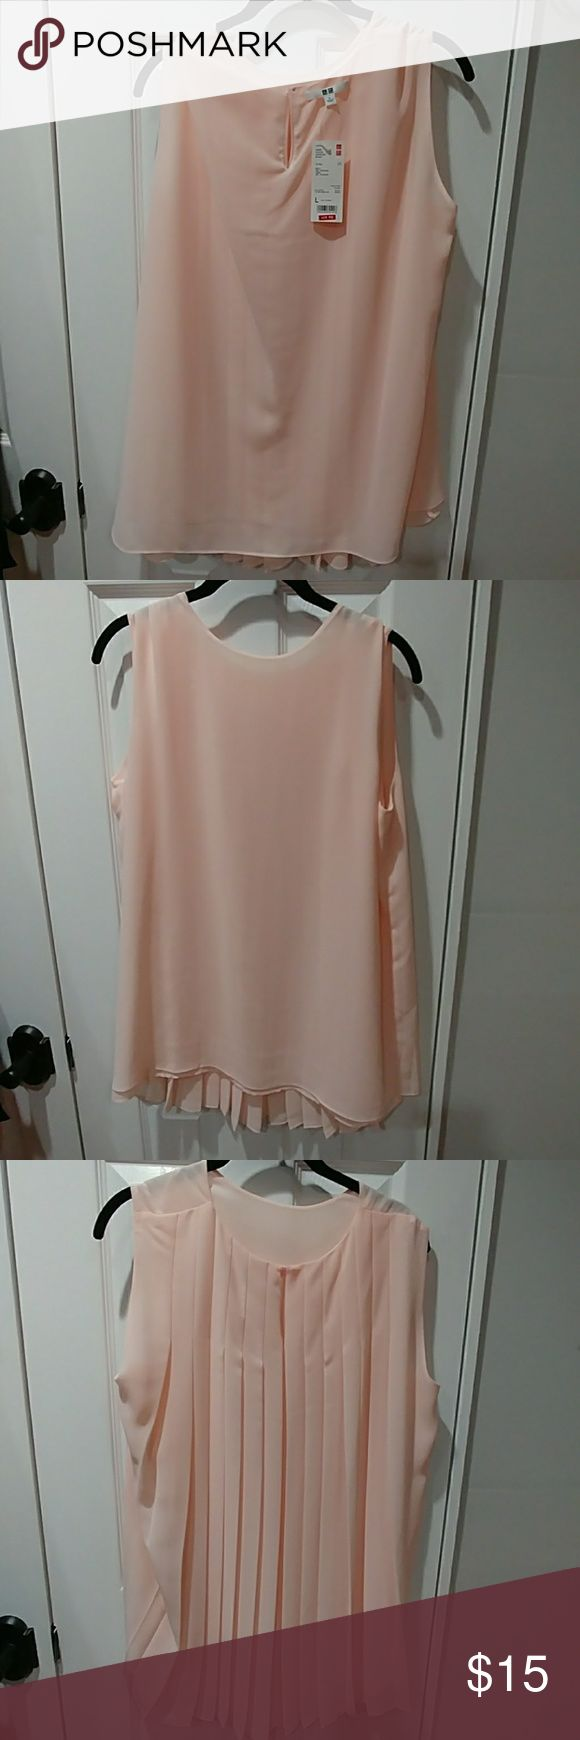 Uniqlo flowy shirt Soft pink shirt with pleated back. Hits a little below the waist in front and part of hips in the back Uniqlo Tops Blouses